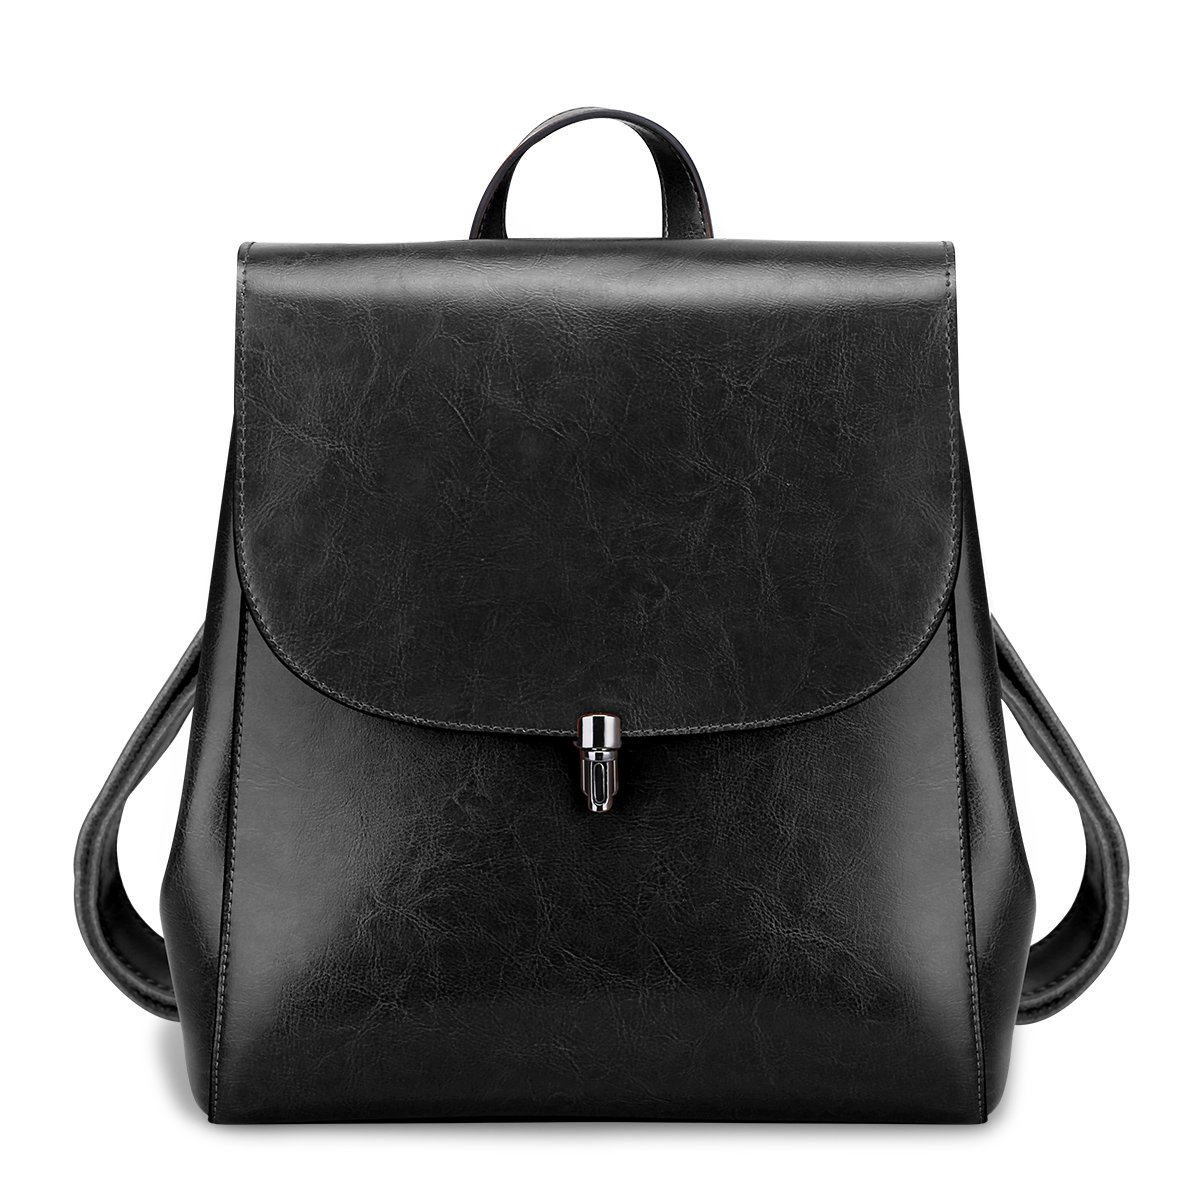 S-ZONE Women Girls Ladies Leather Backpack Purse Daily Casual Travel Bag (Black)